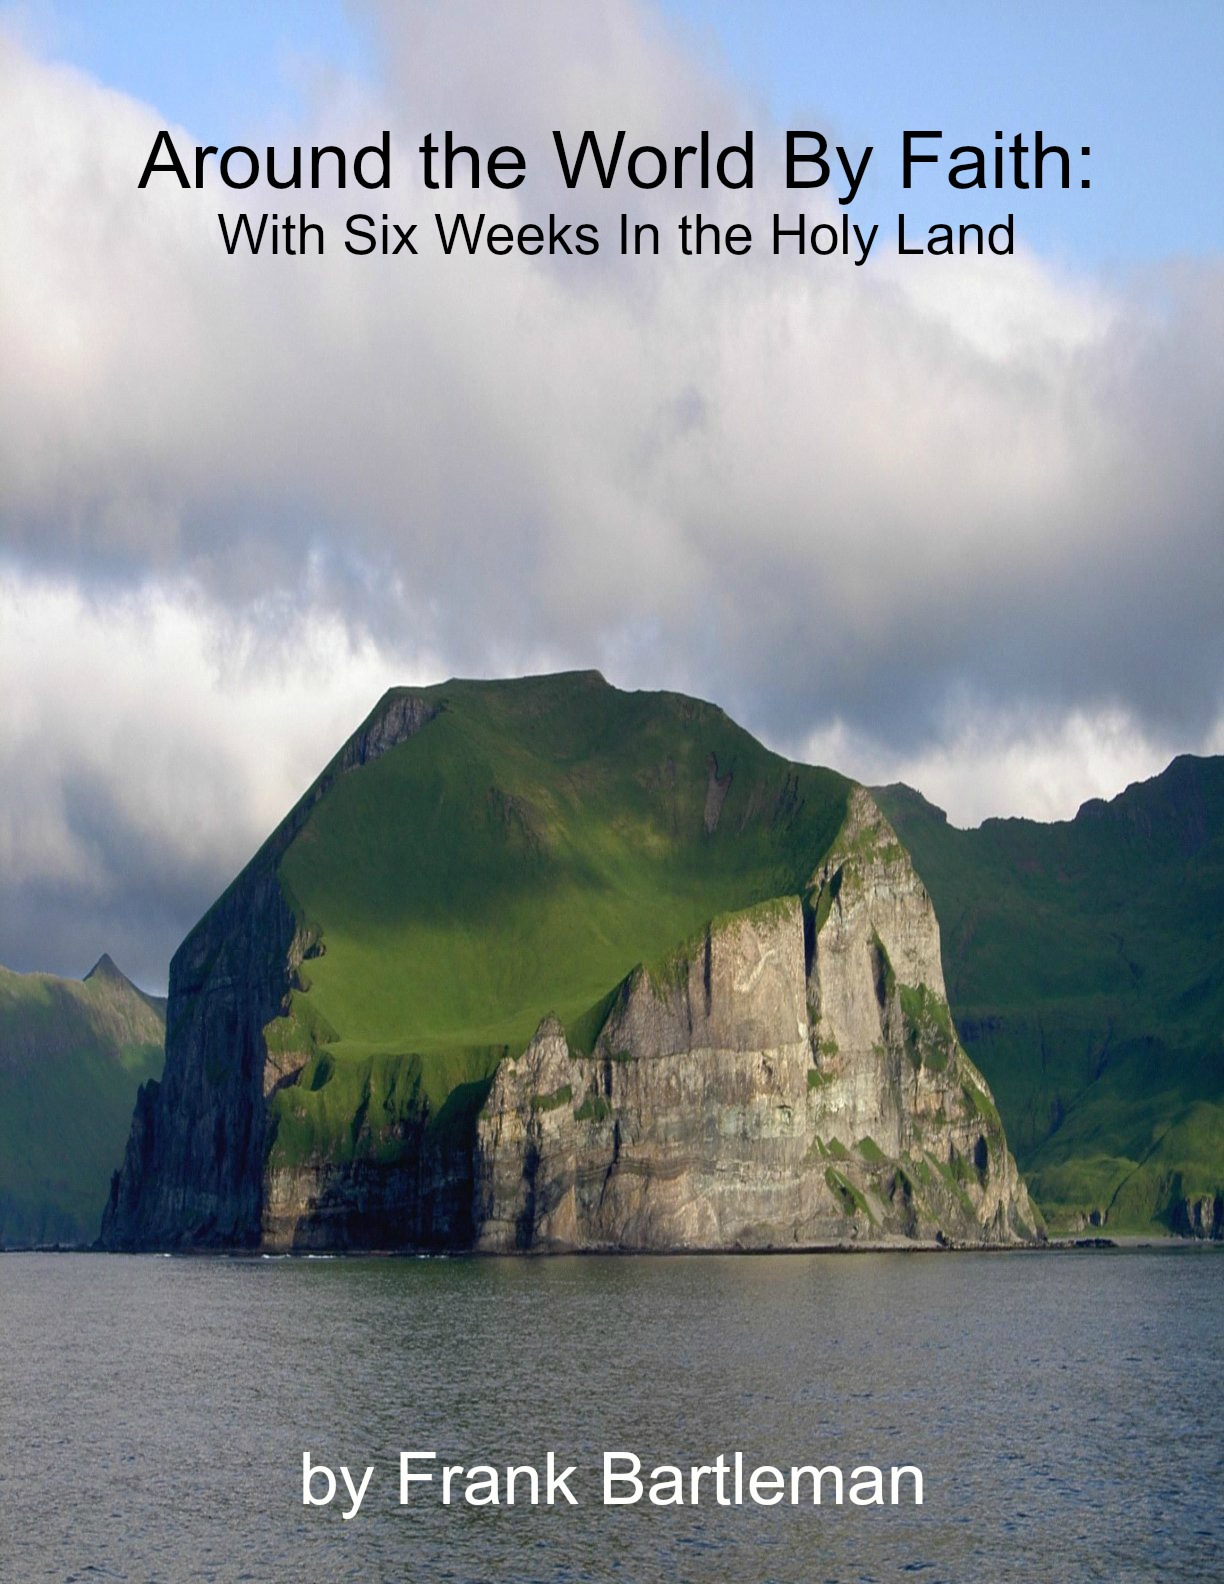 Around the World By Faith: With Six Weeks In the Holy Land